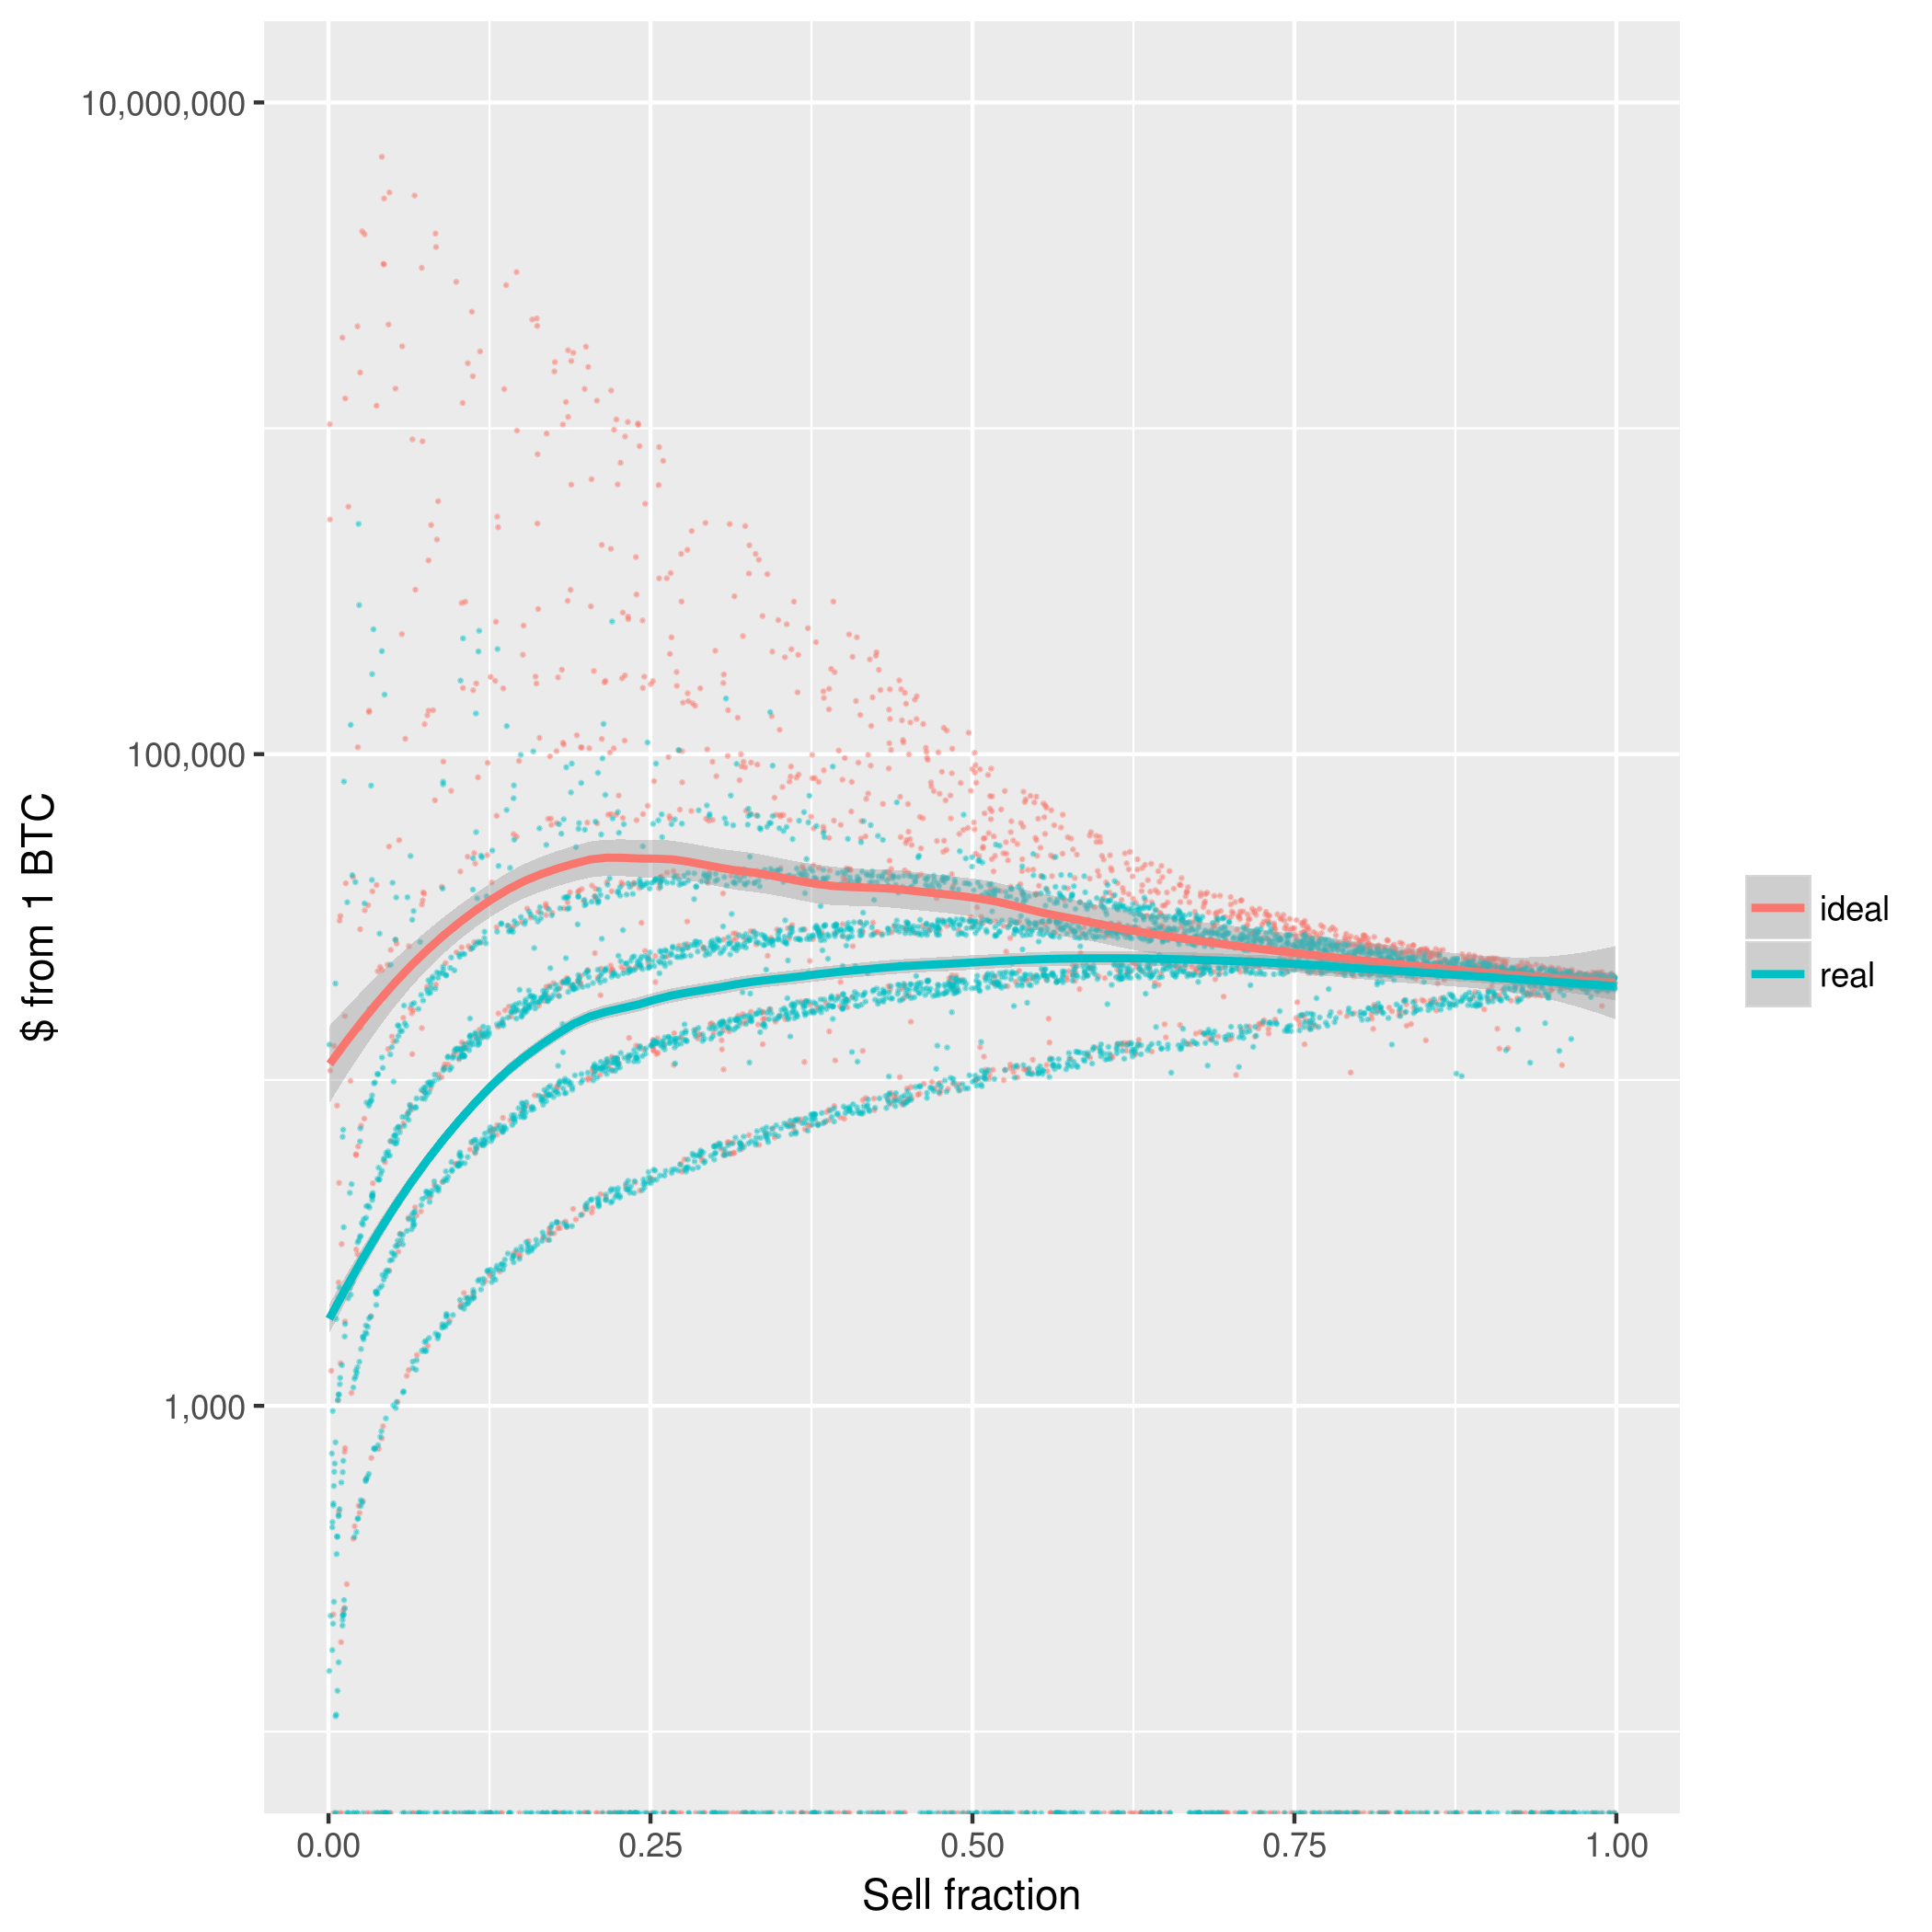 Price simulation with a bounded exponential distribution, on a log scale